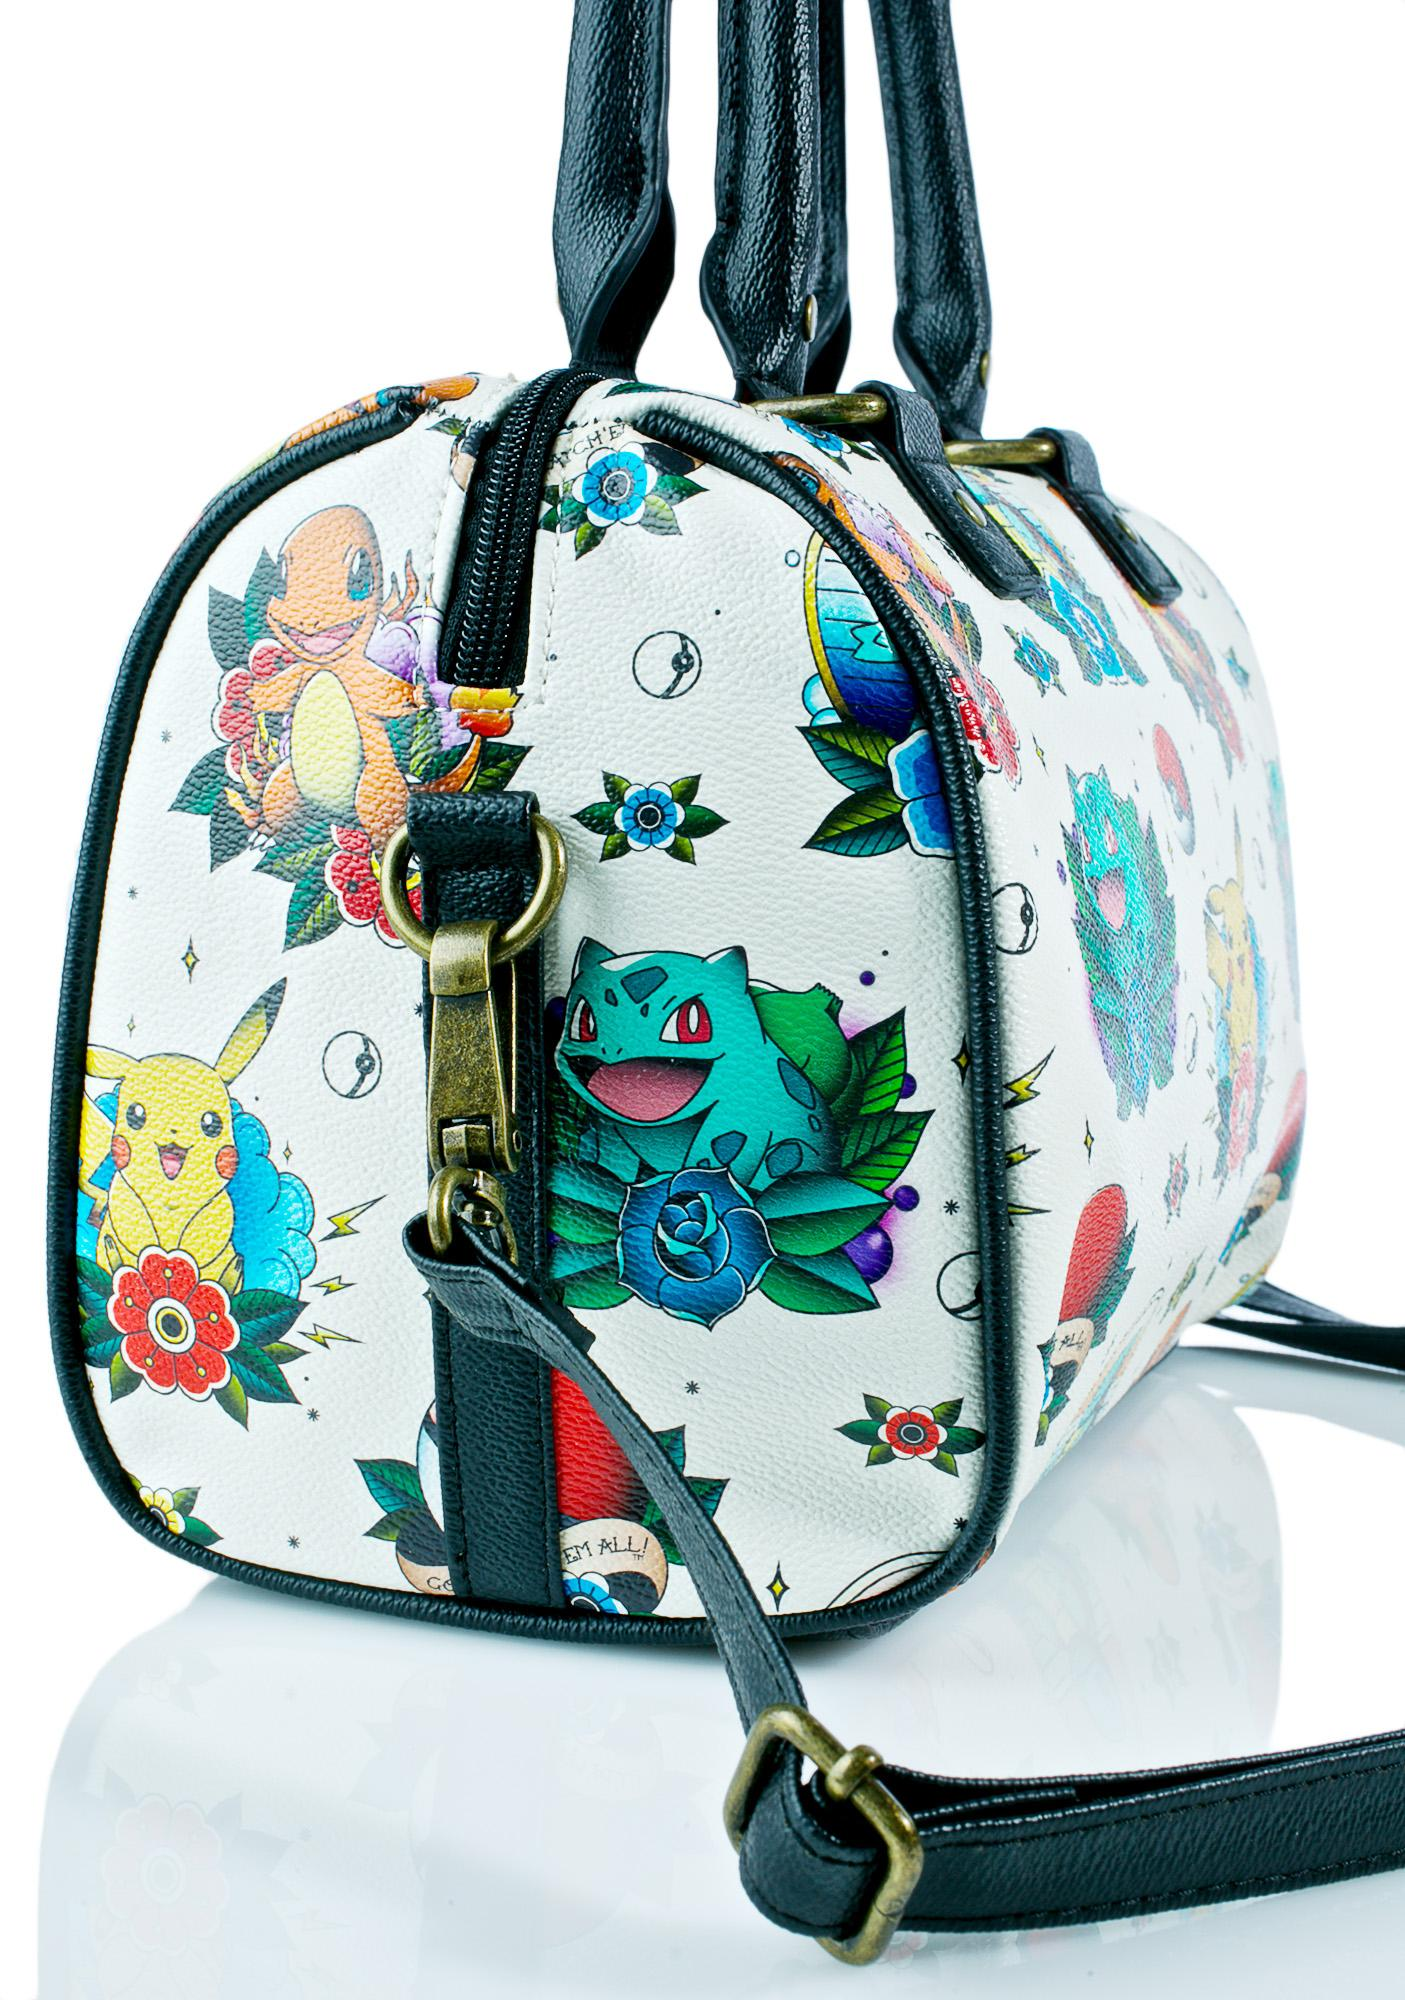 ... Loungefly X Pokémon Tattoo Flash Duffle Bag ... 8a8410aeba771